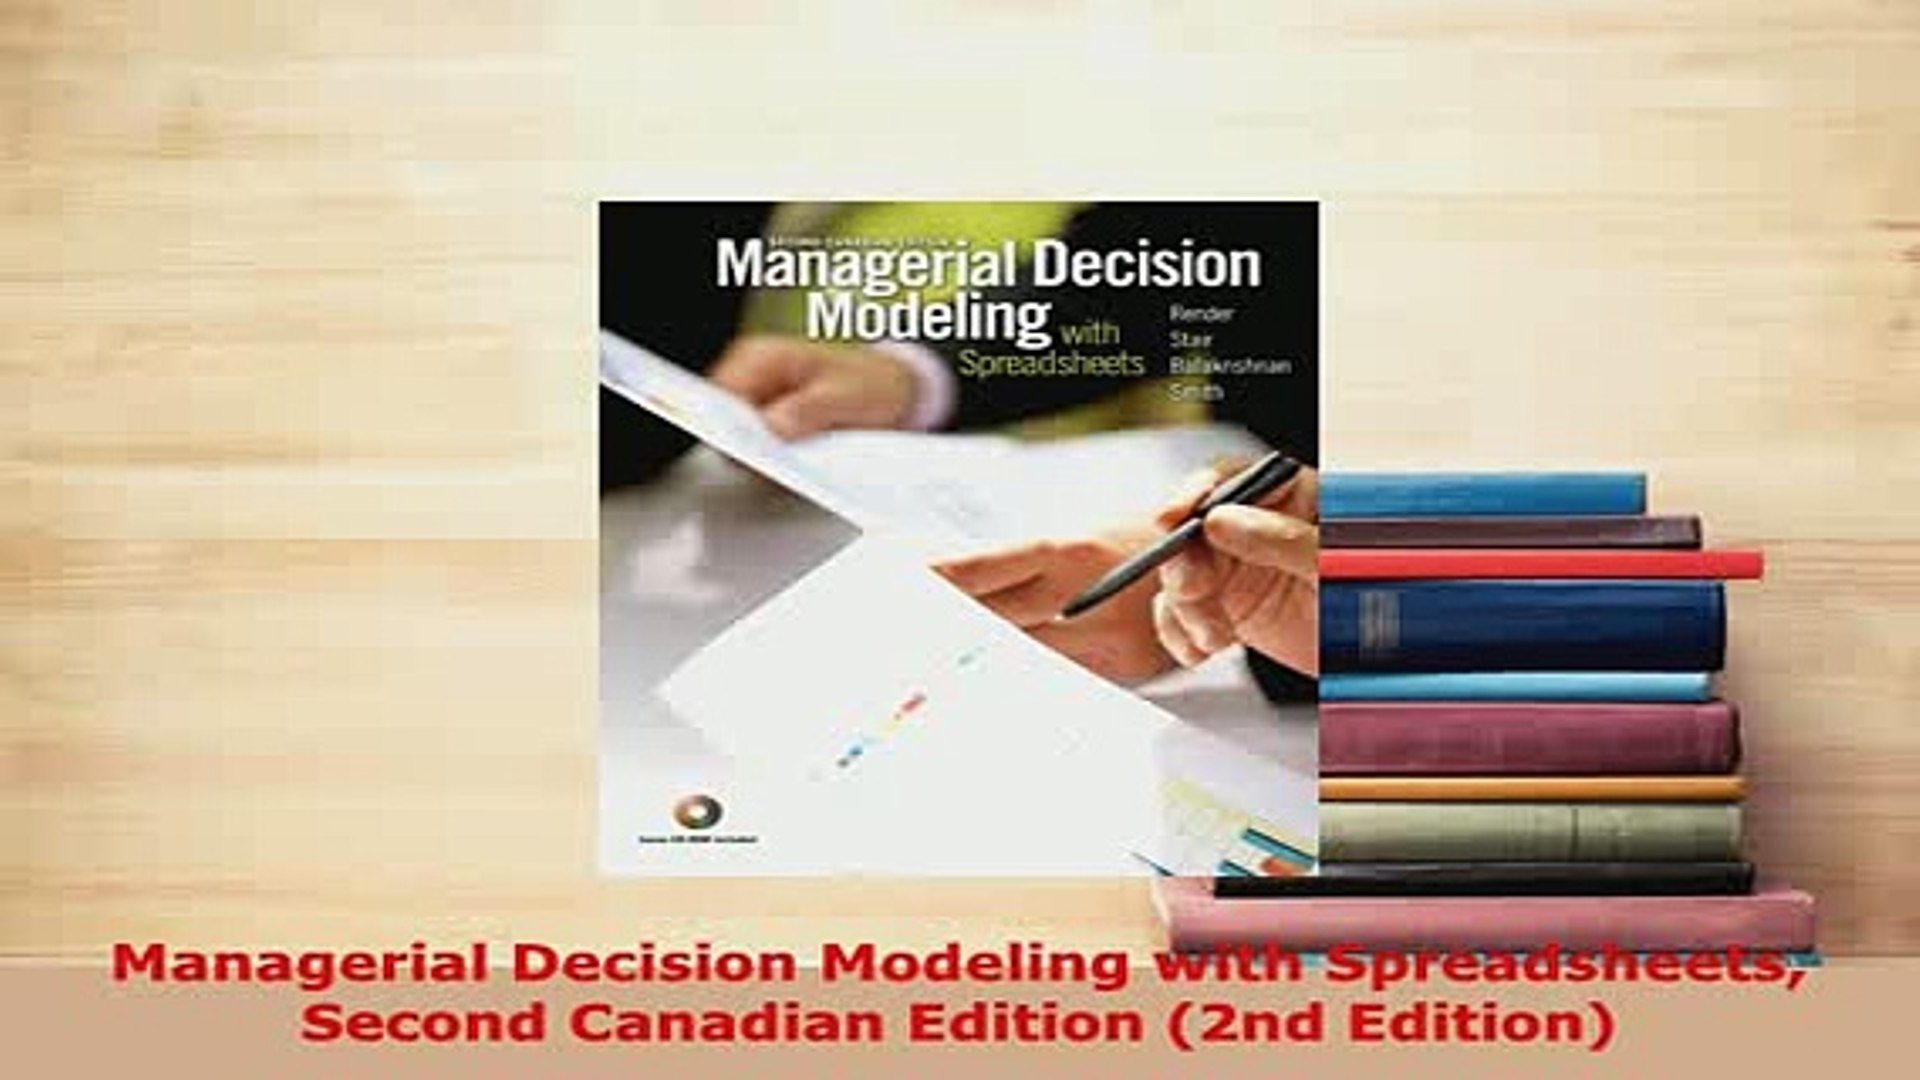 Managerial Decision Modeling With Spreadsheets 2Nd Edition In Pdf Managerial Decision Modeling With Spreadsheets Second Canadian